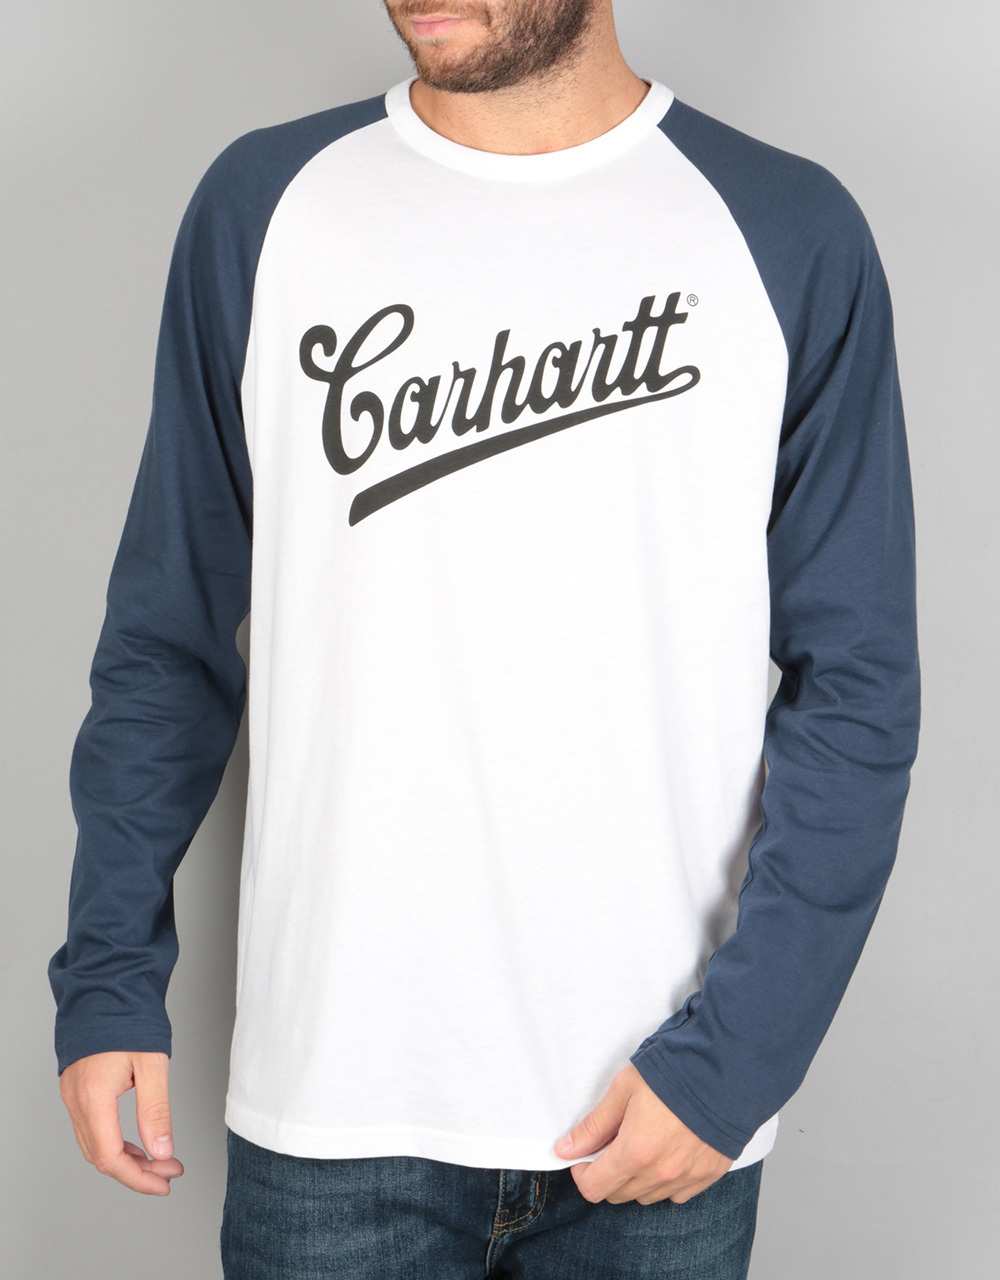 Carhartt l s strike t shirt white blue long sleeve t for Carhartt long sleeve t shirts white